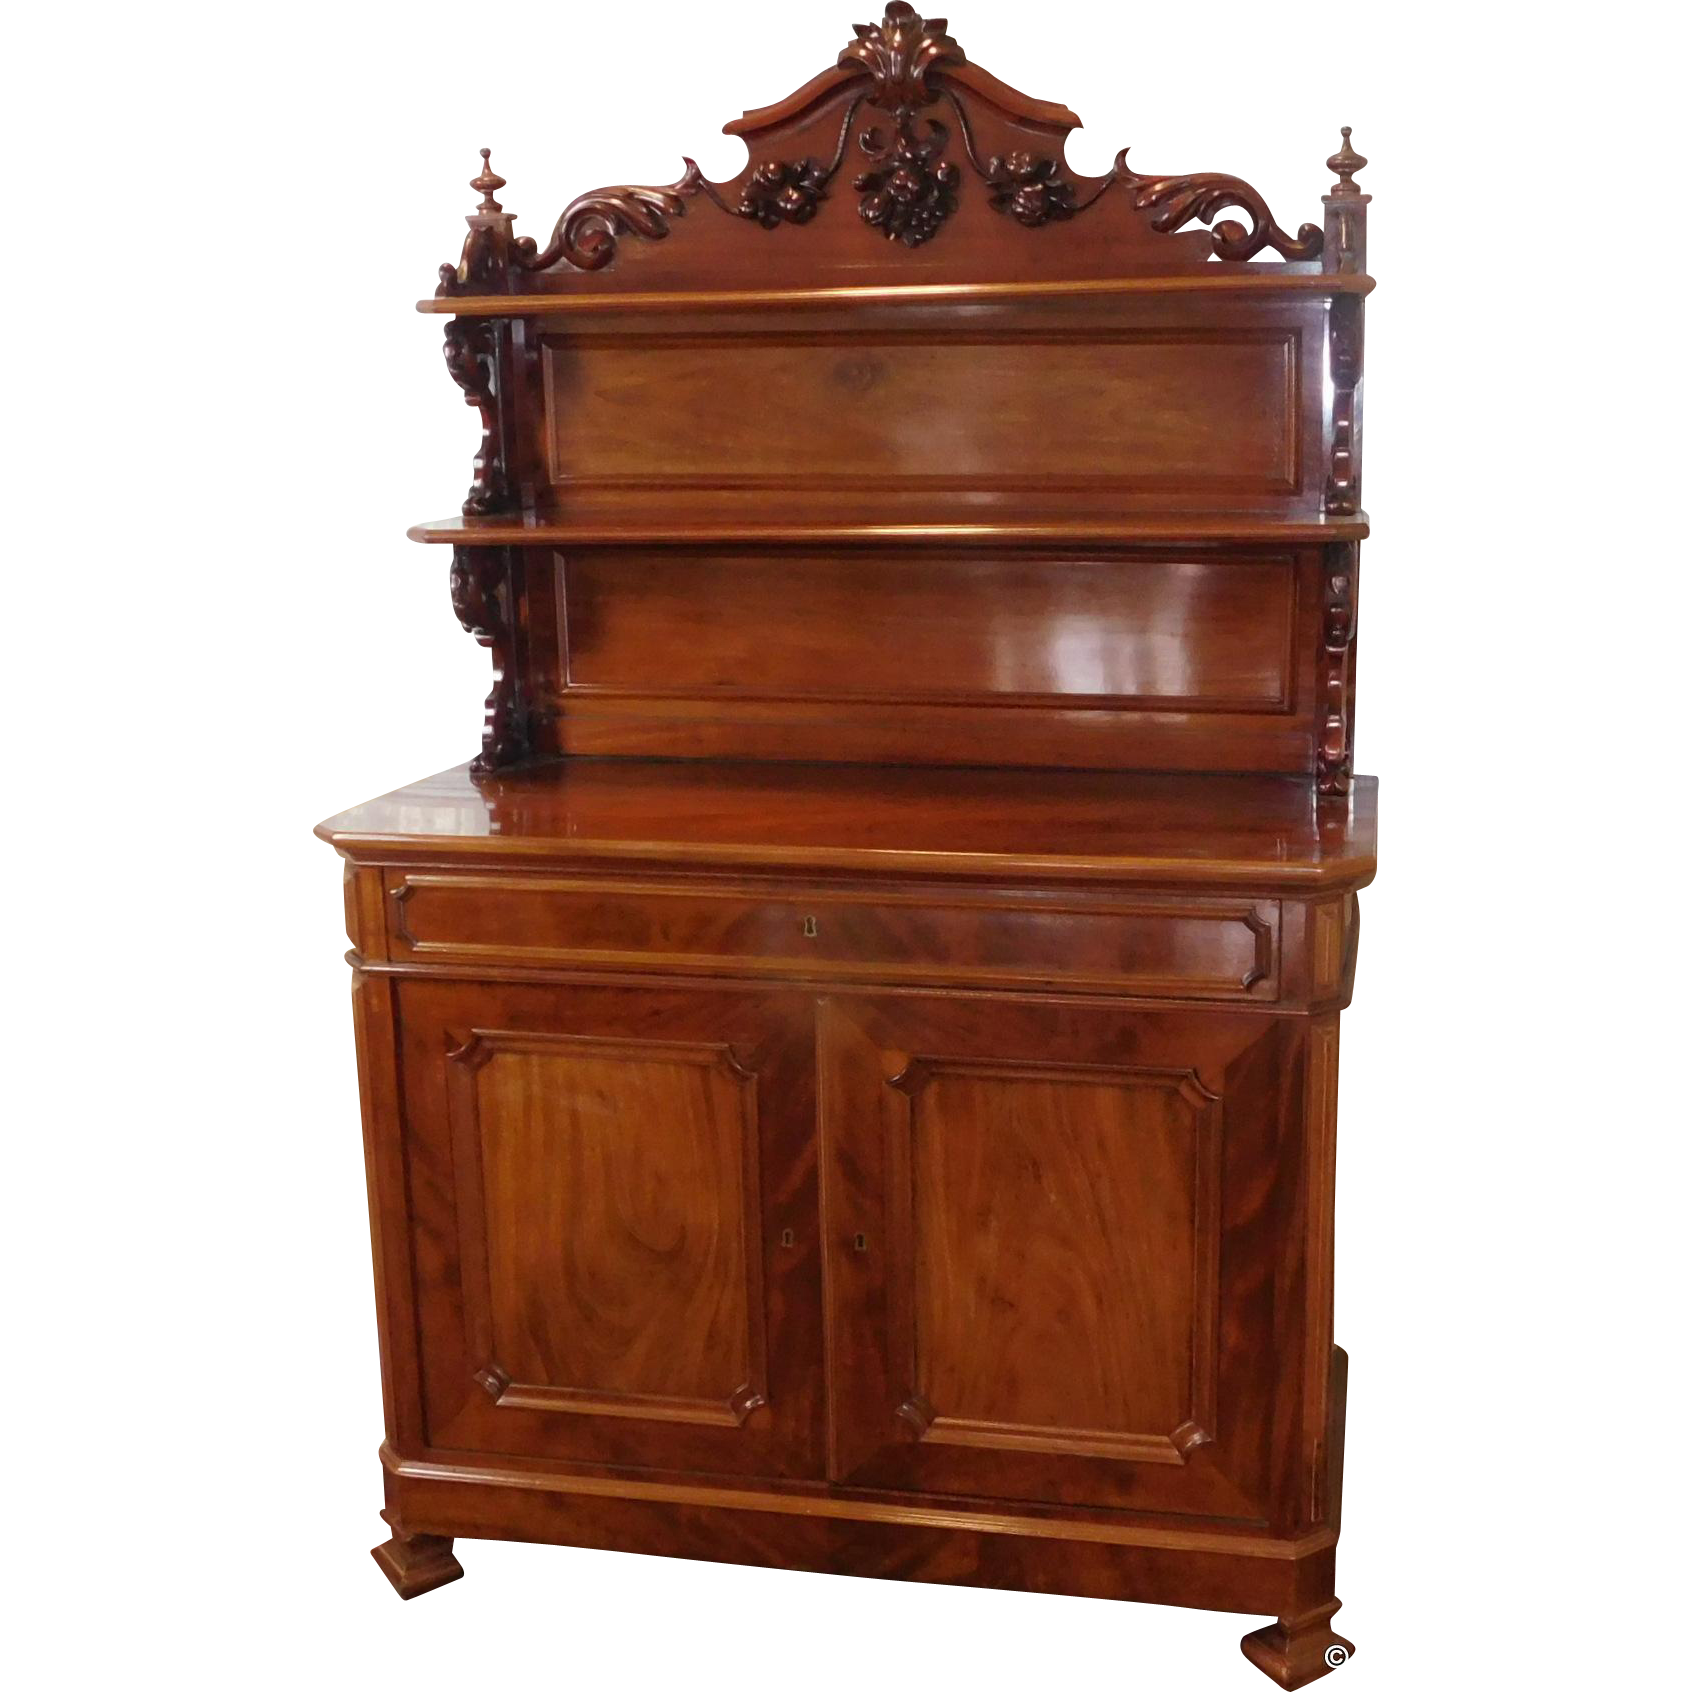 dixie wicker bedroom furniture dixie best home and house dixie brand bedroom furniture potential value my